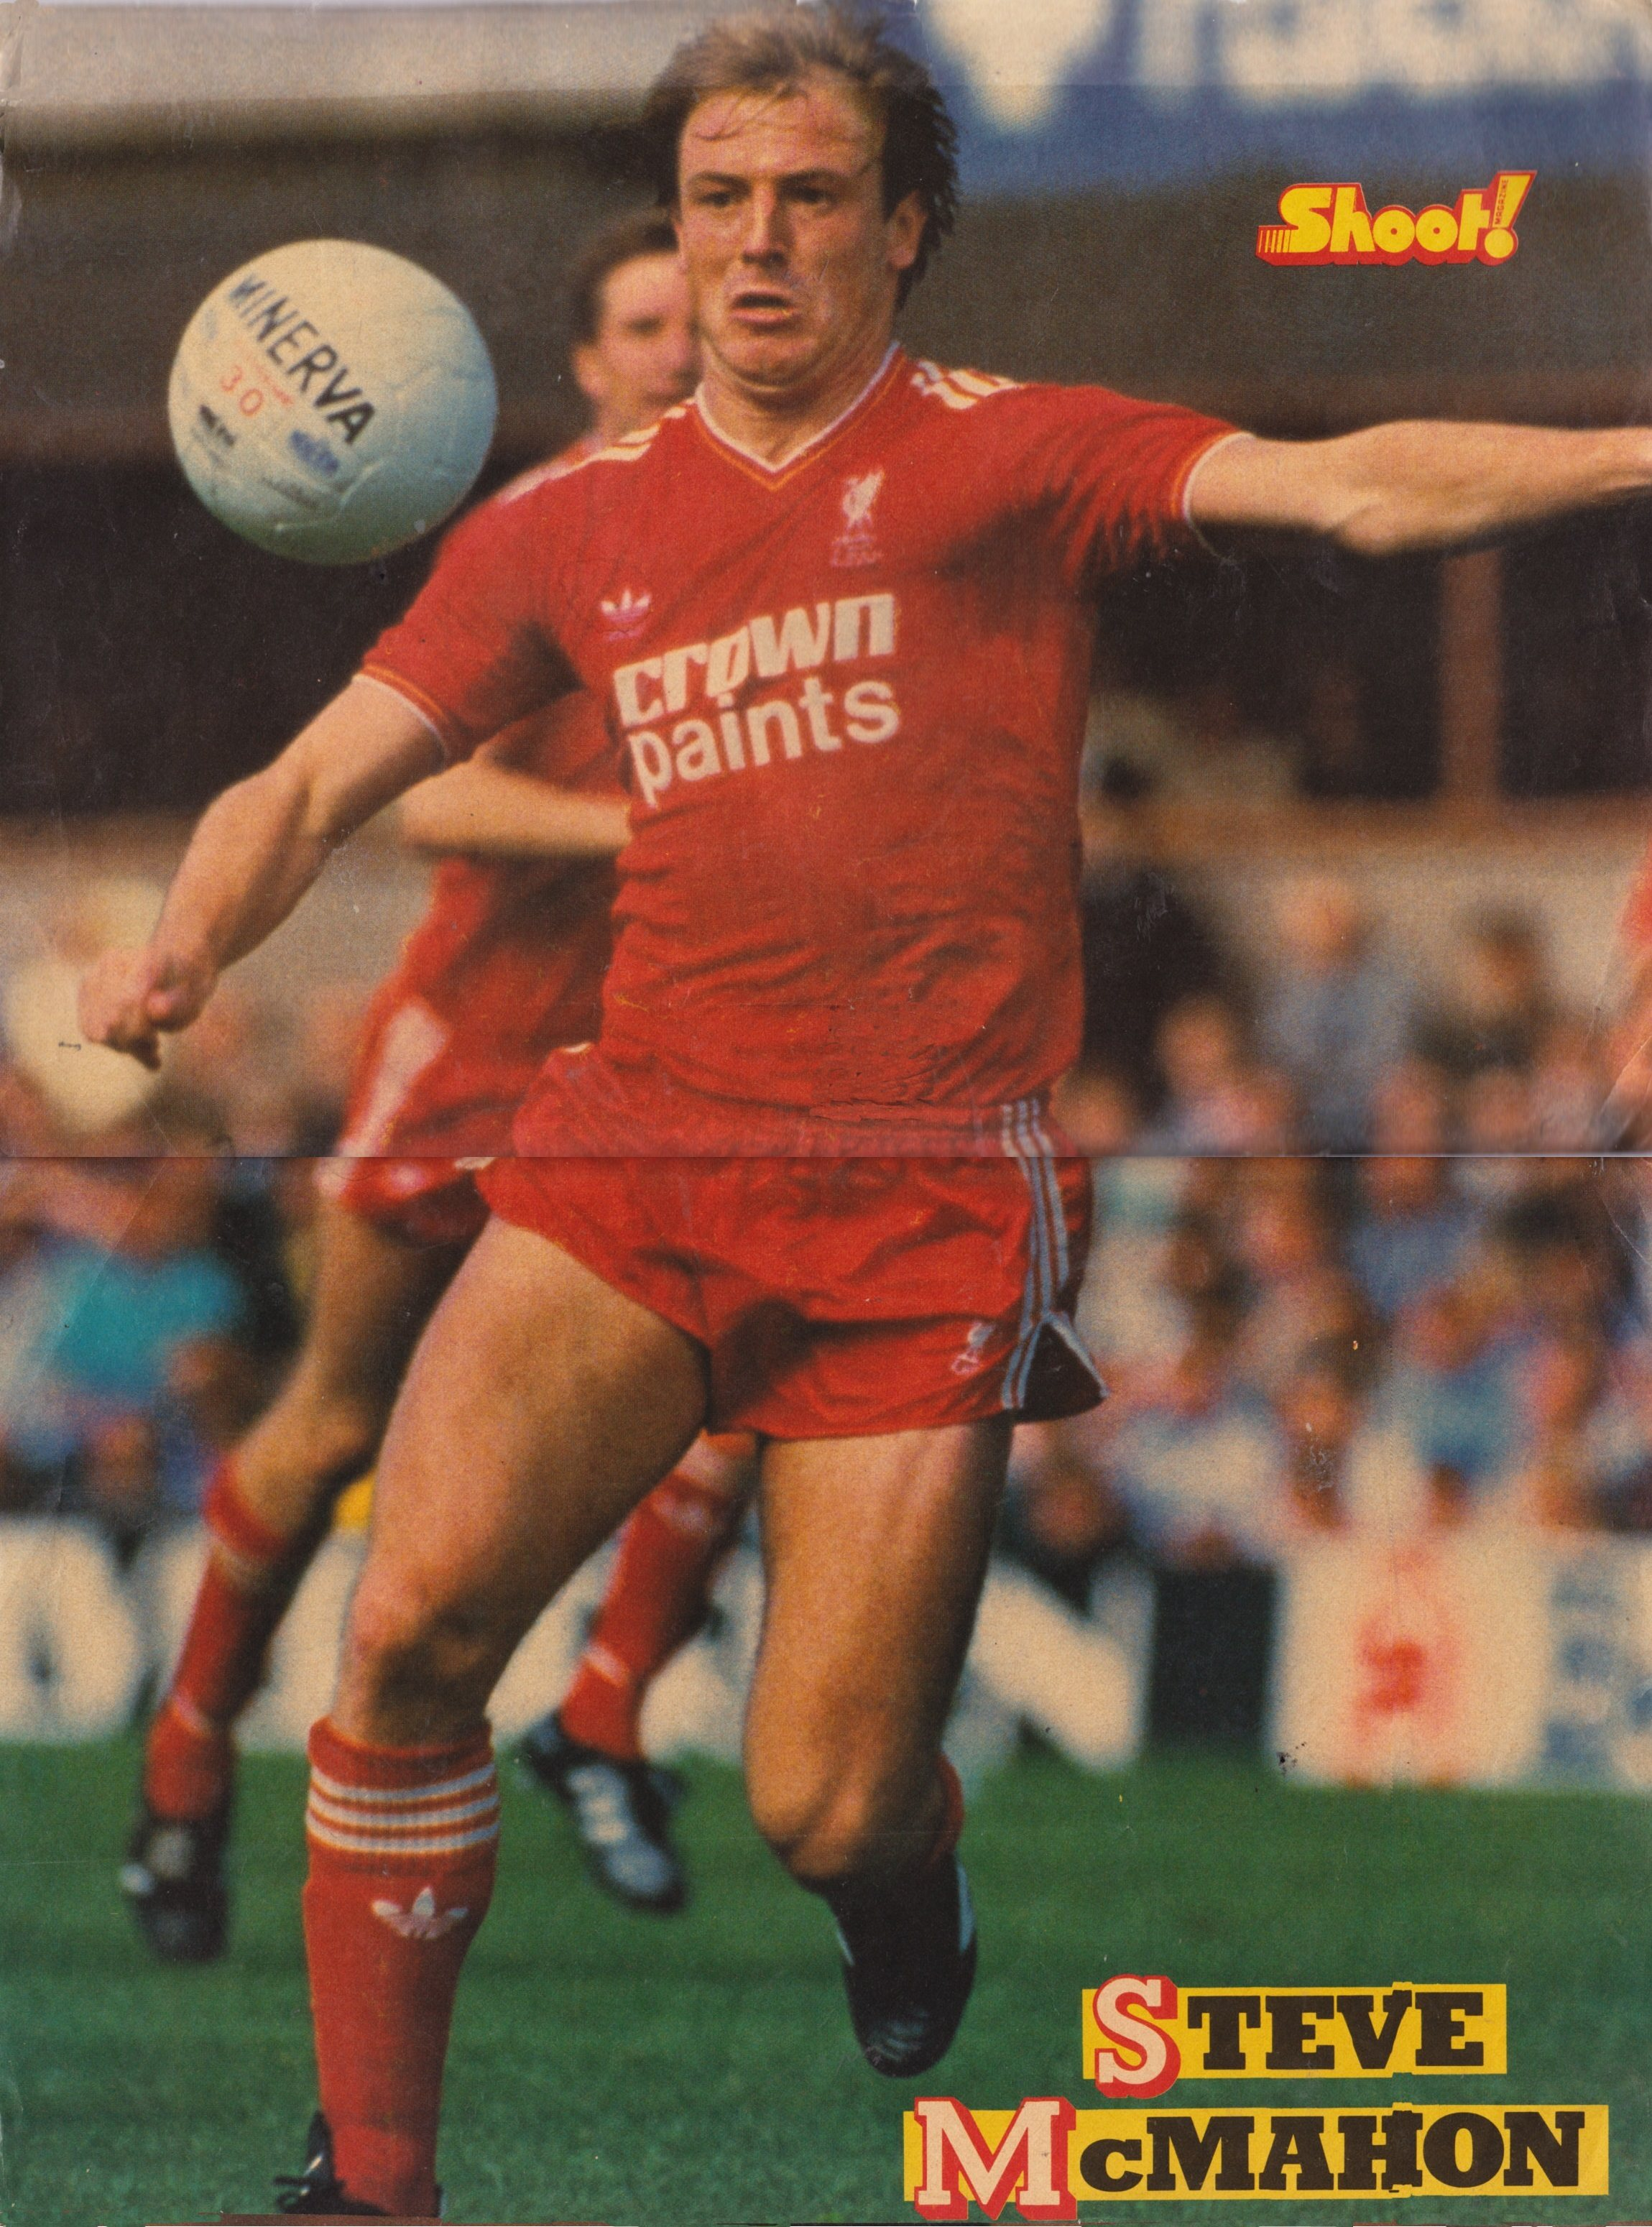 Big Shoot! poster of Steve McMahon - 1985